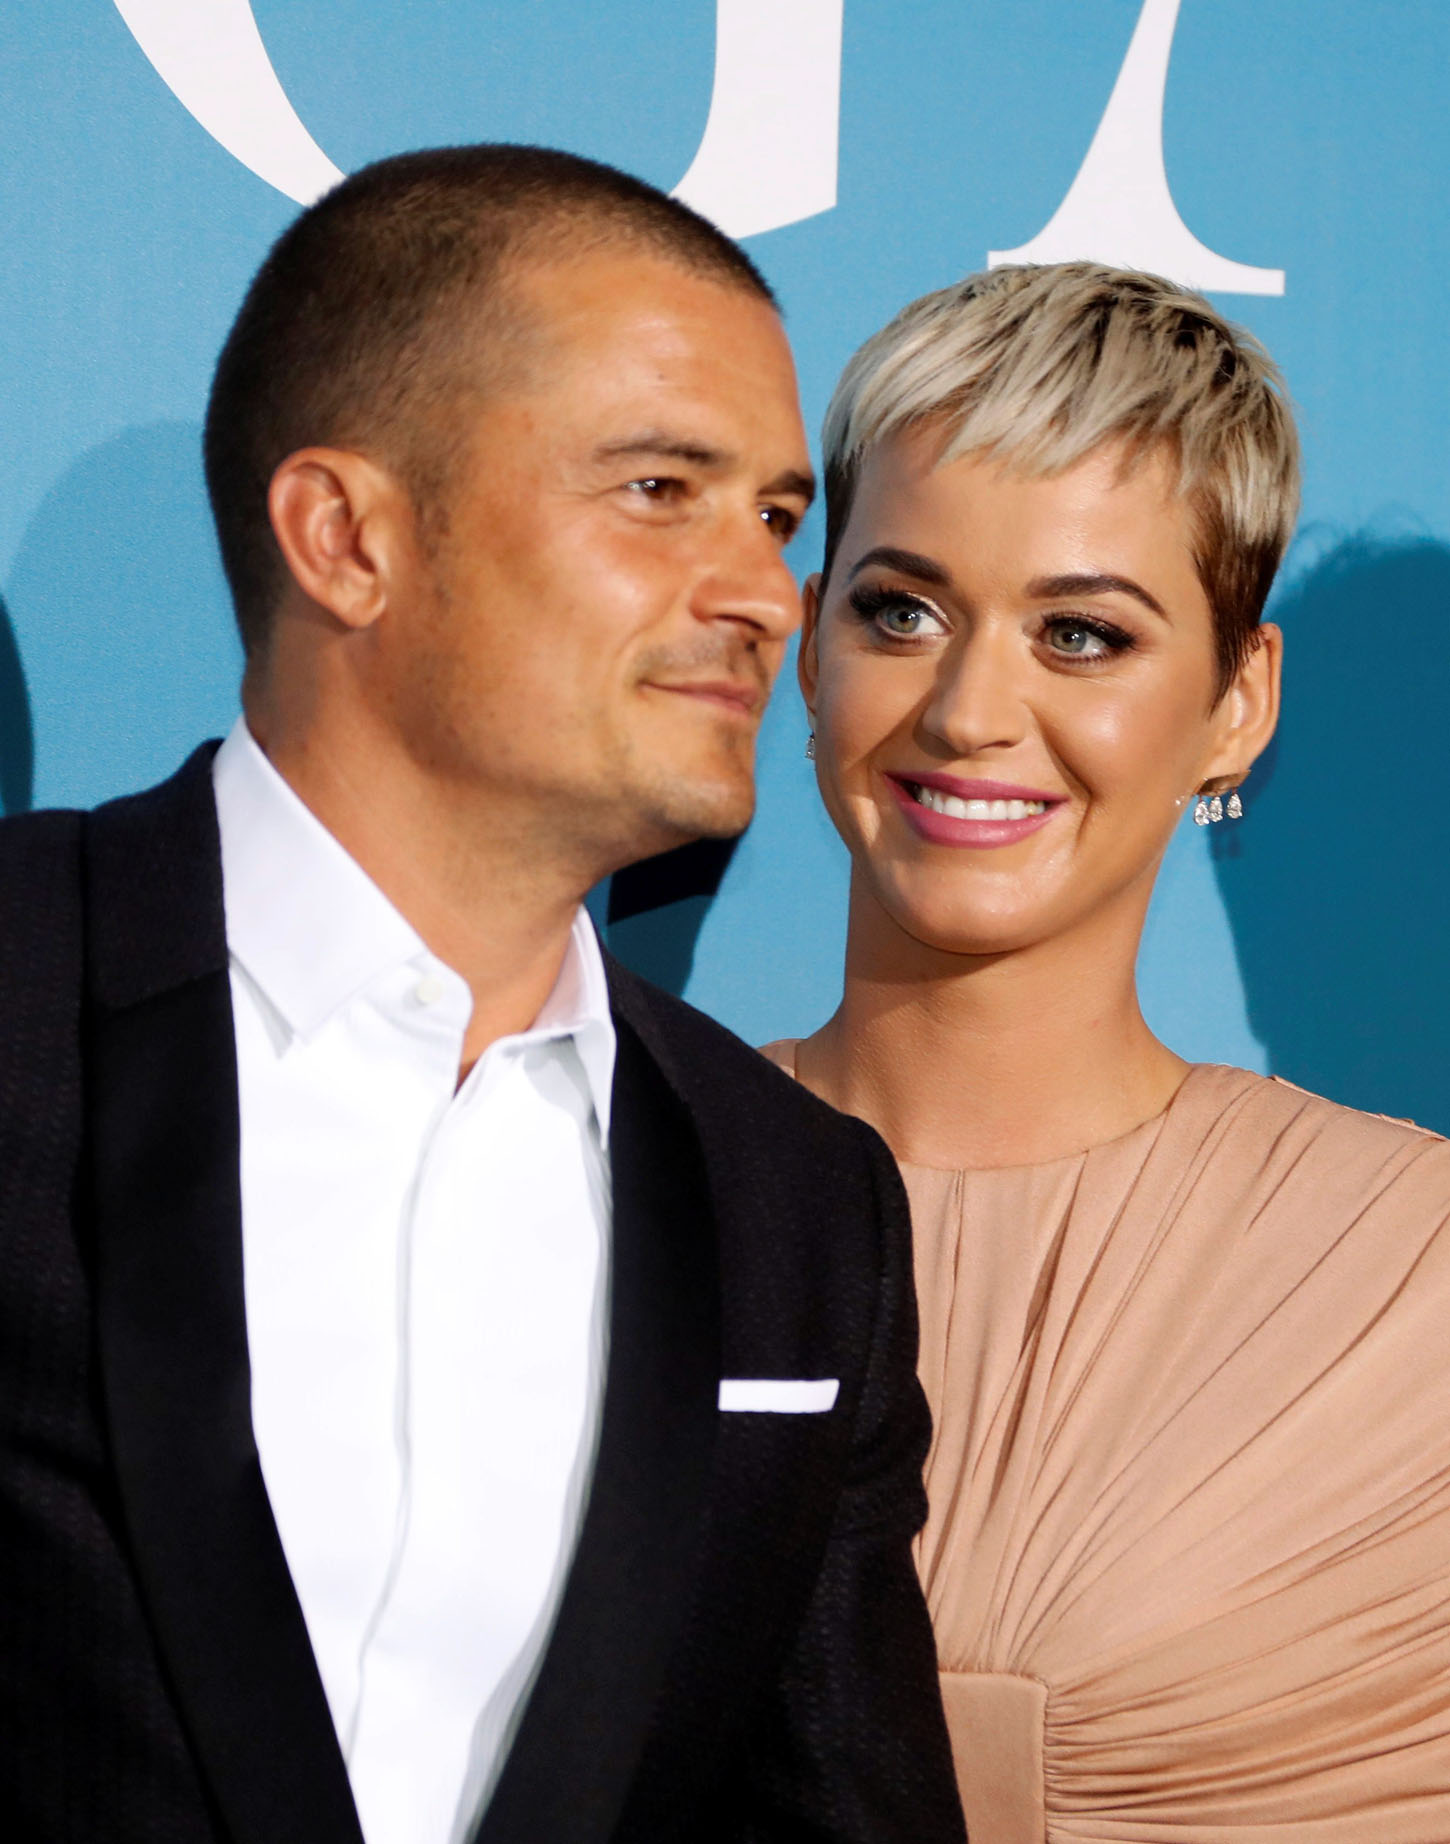 Singer Katy Perry and actor Orlando Bloom pose upon their arrival for the Monte-Carlo Gala for the Global Ocean in Monaco, September 26, 2018. REUTERS/Eric Gaillard